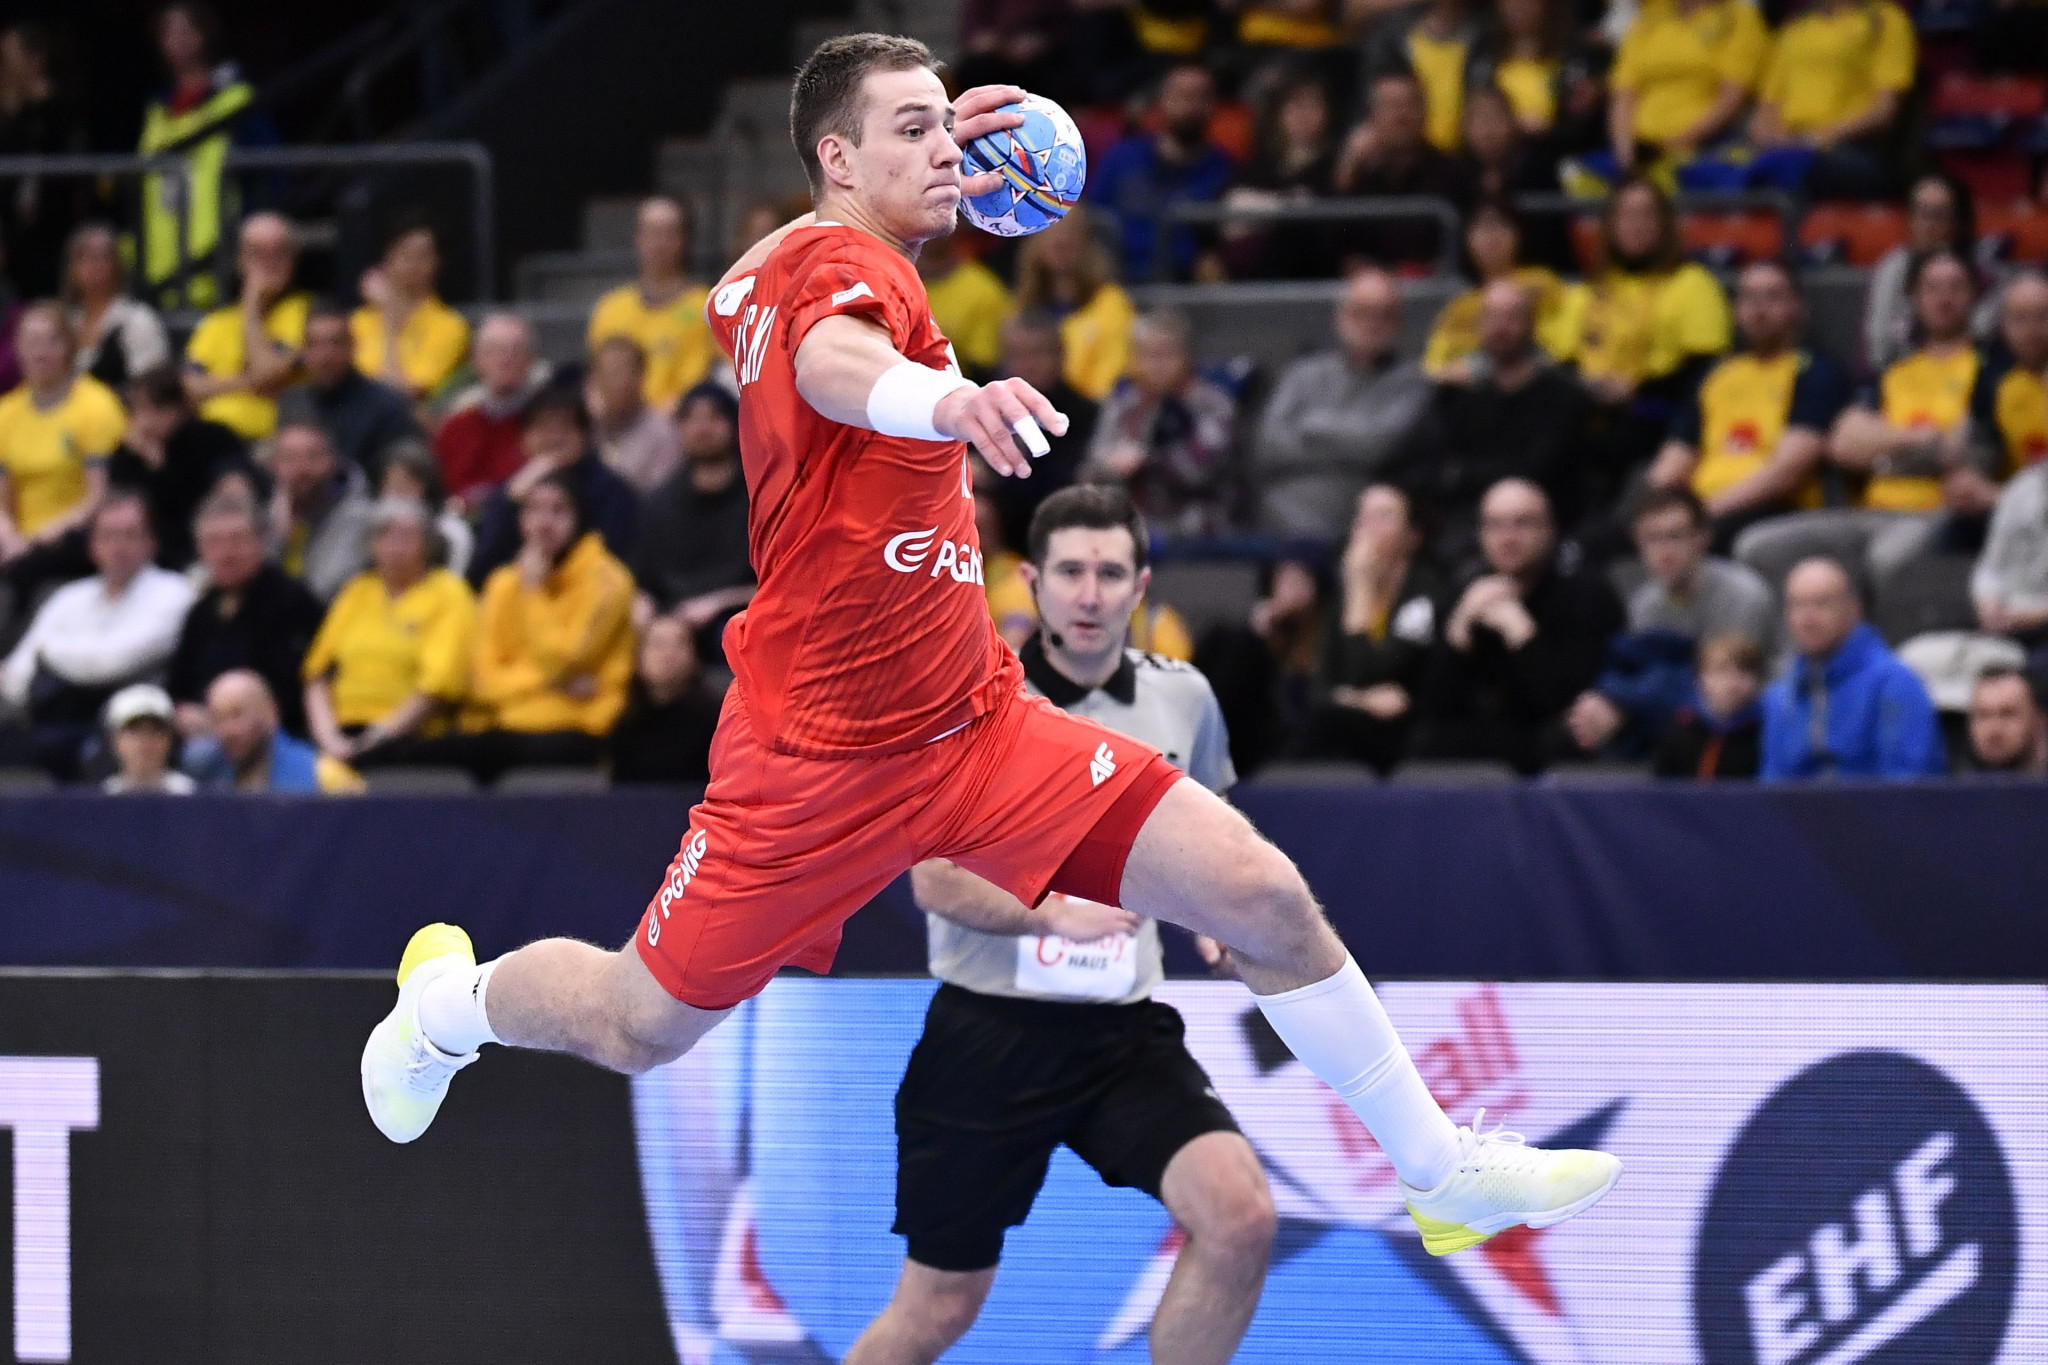 Poland will feature at the 2021 Handball World Championships having missed out on the event in 2019 ©Getty Images